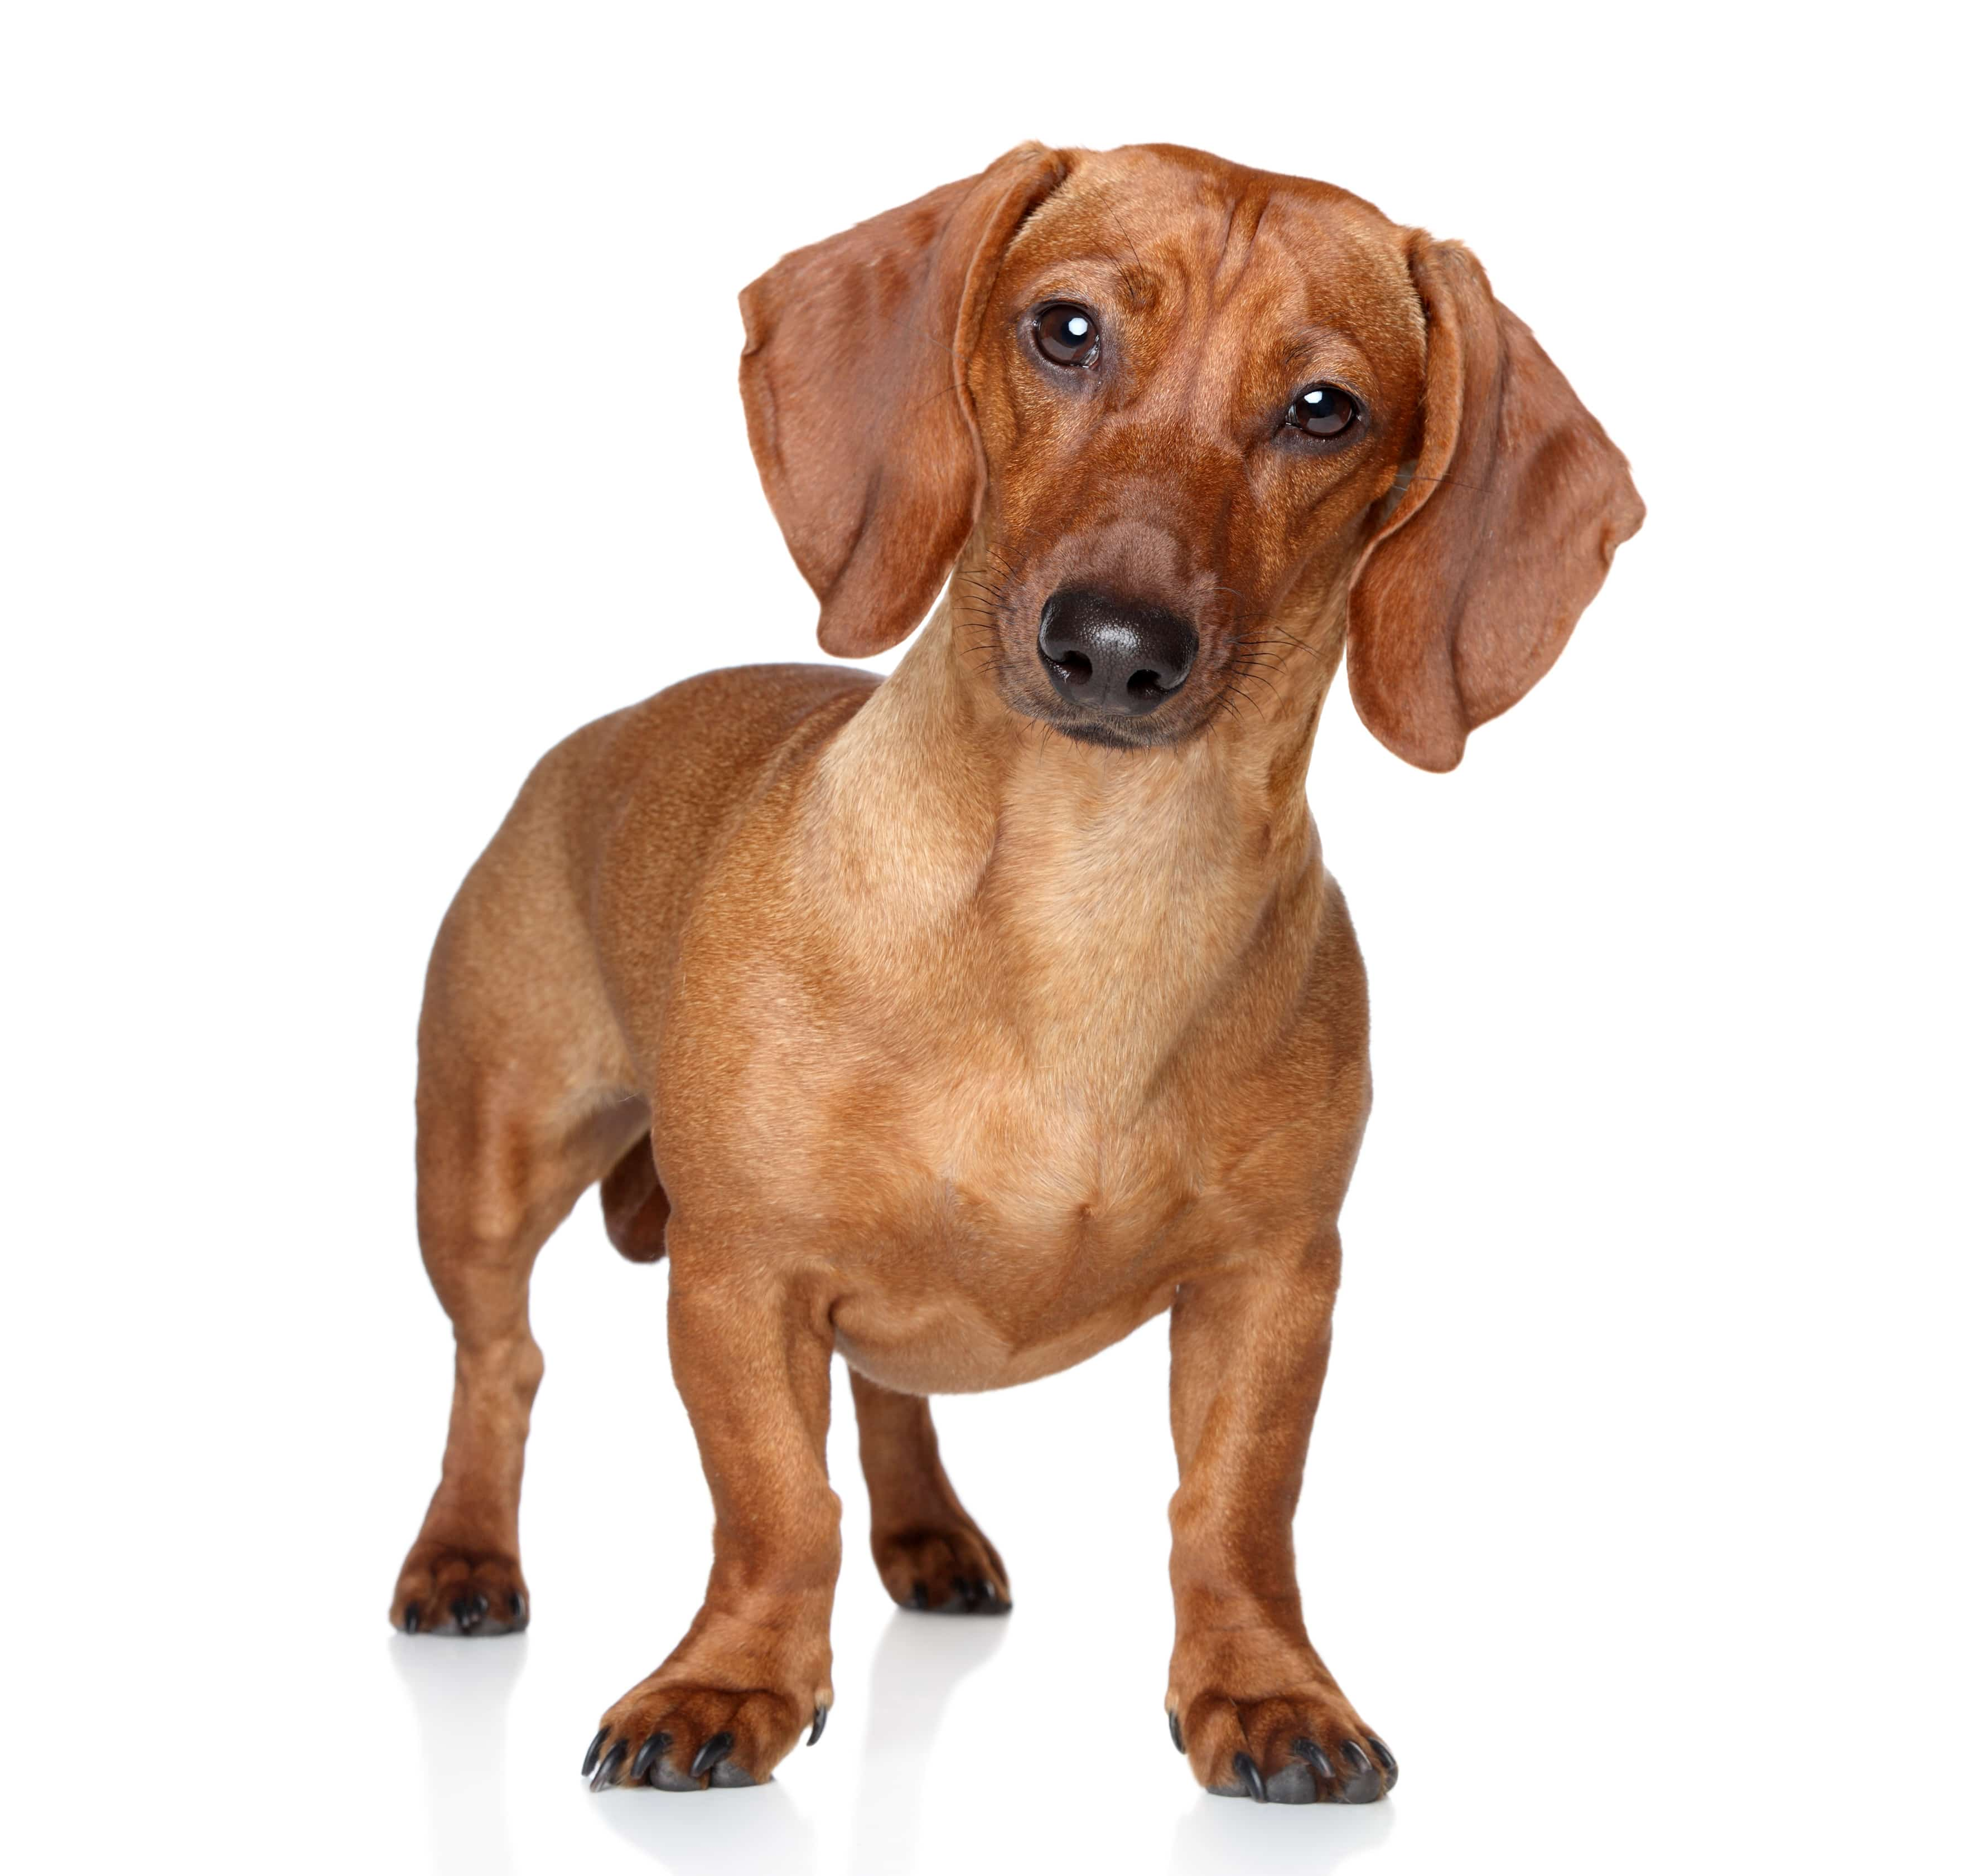 Brown dachshund stand on a white background